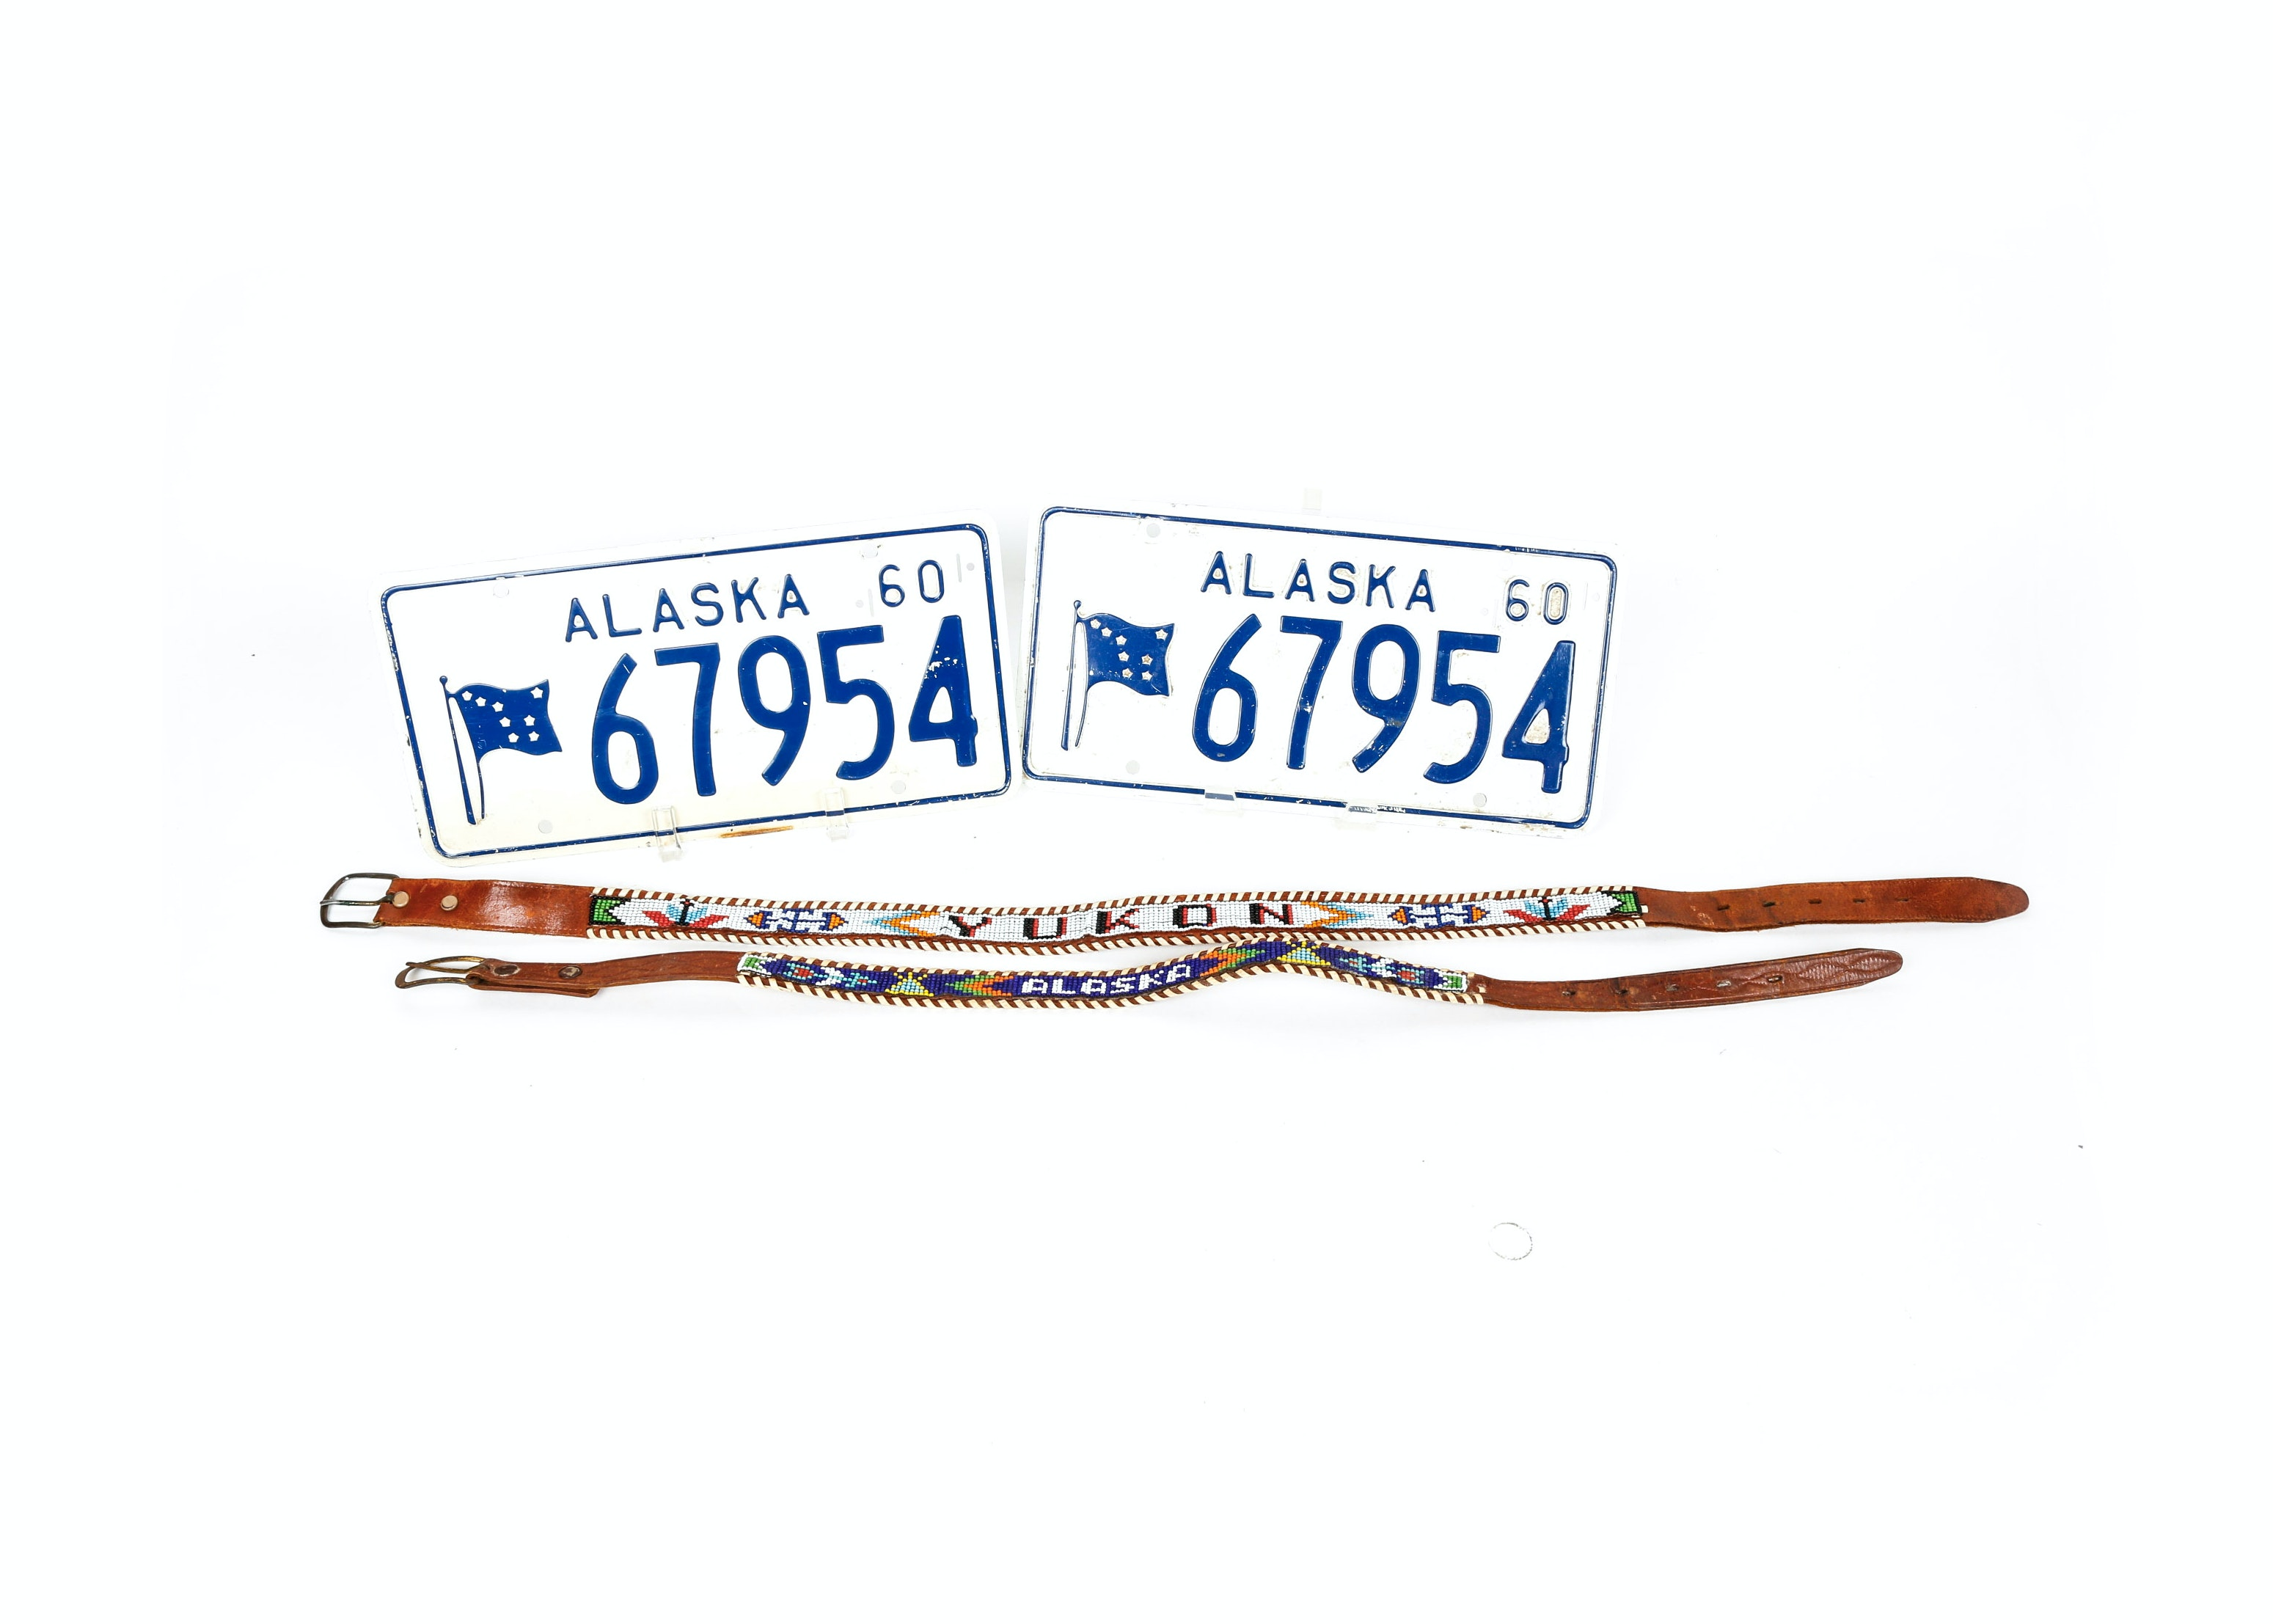 Vintage Alaskan License Plates and Beaded Leather Belts